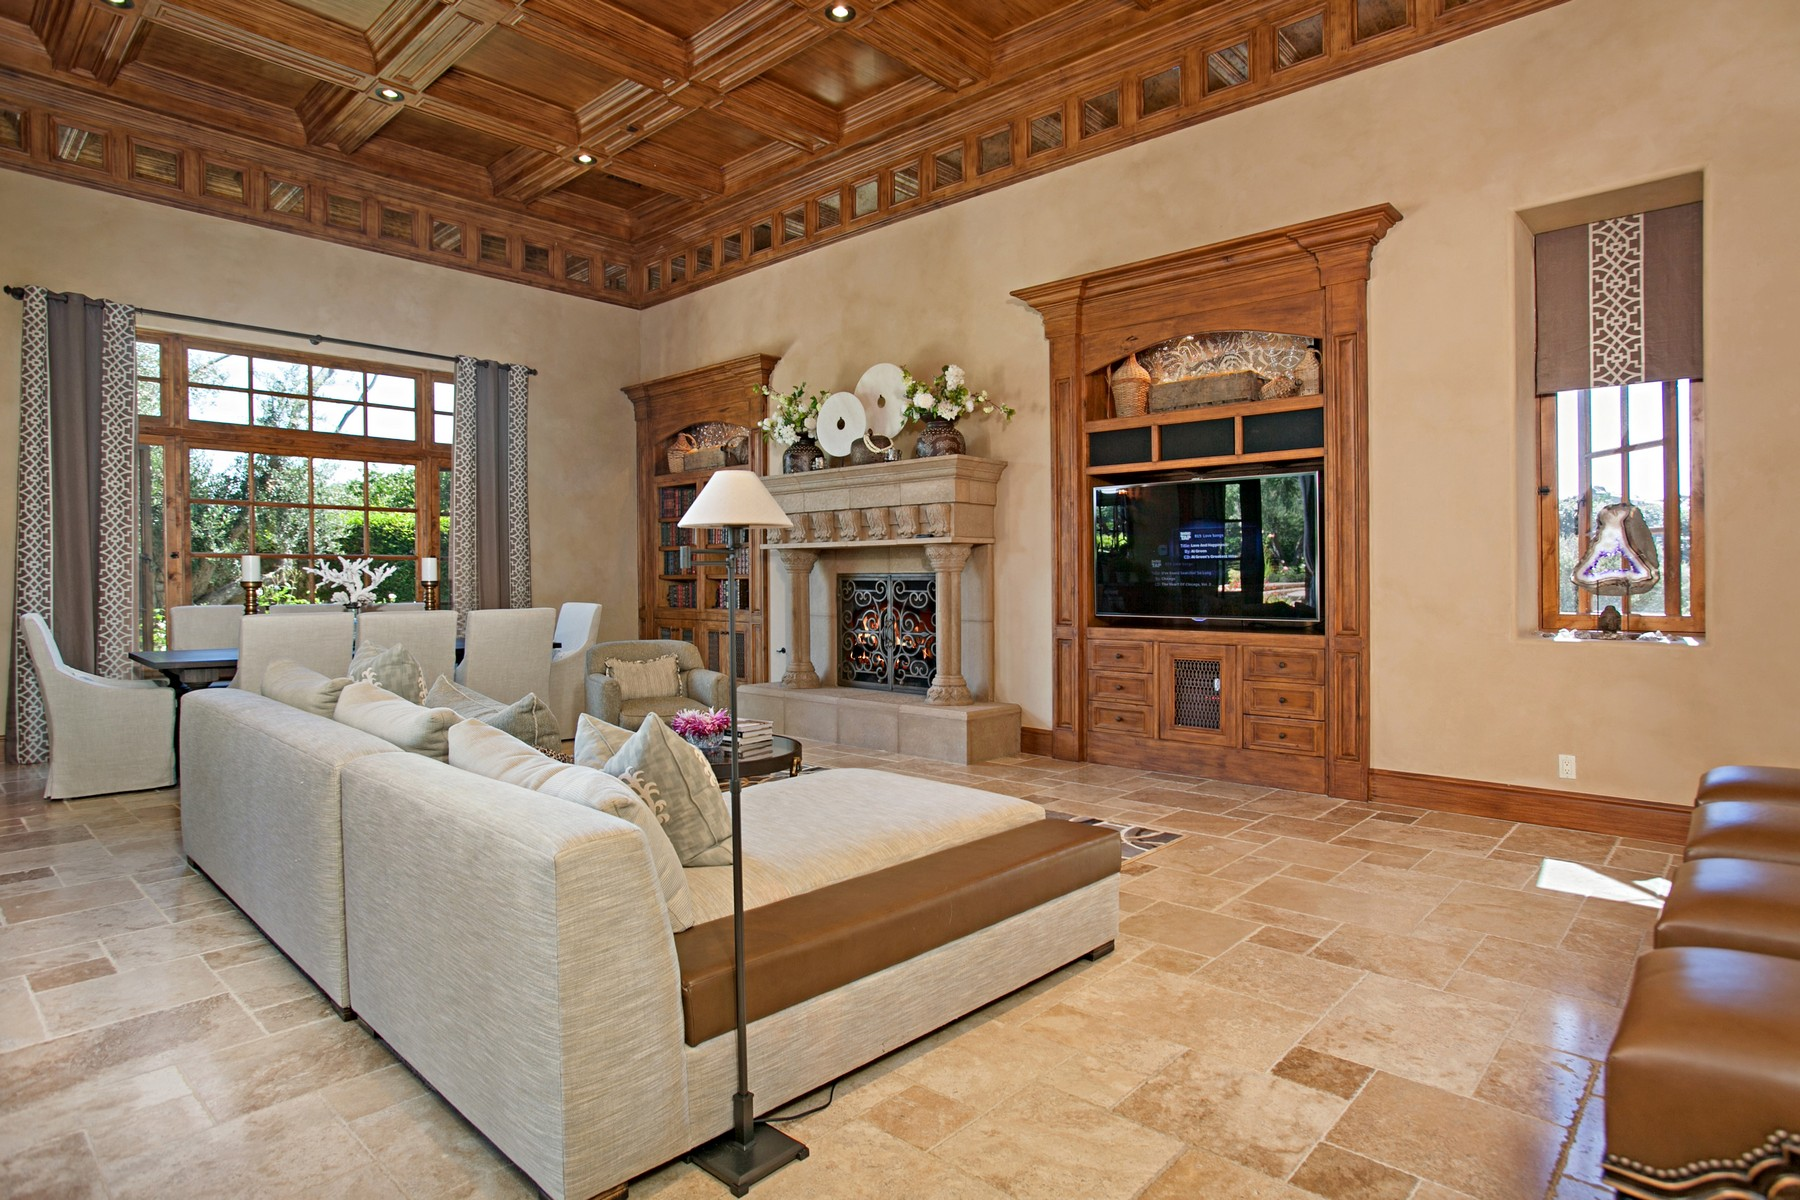 Additional photo for property listing at 6285 Strada Fragante  Rancho Santa Fe, California 92091 United States